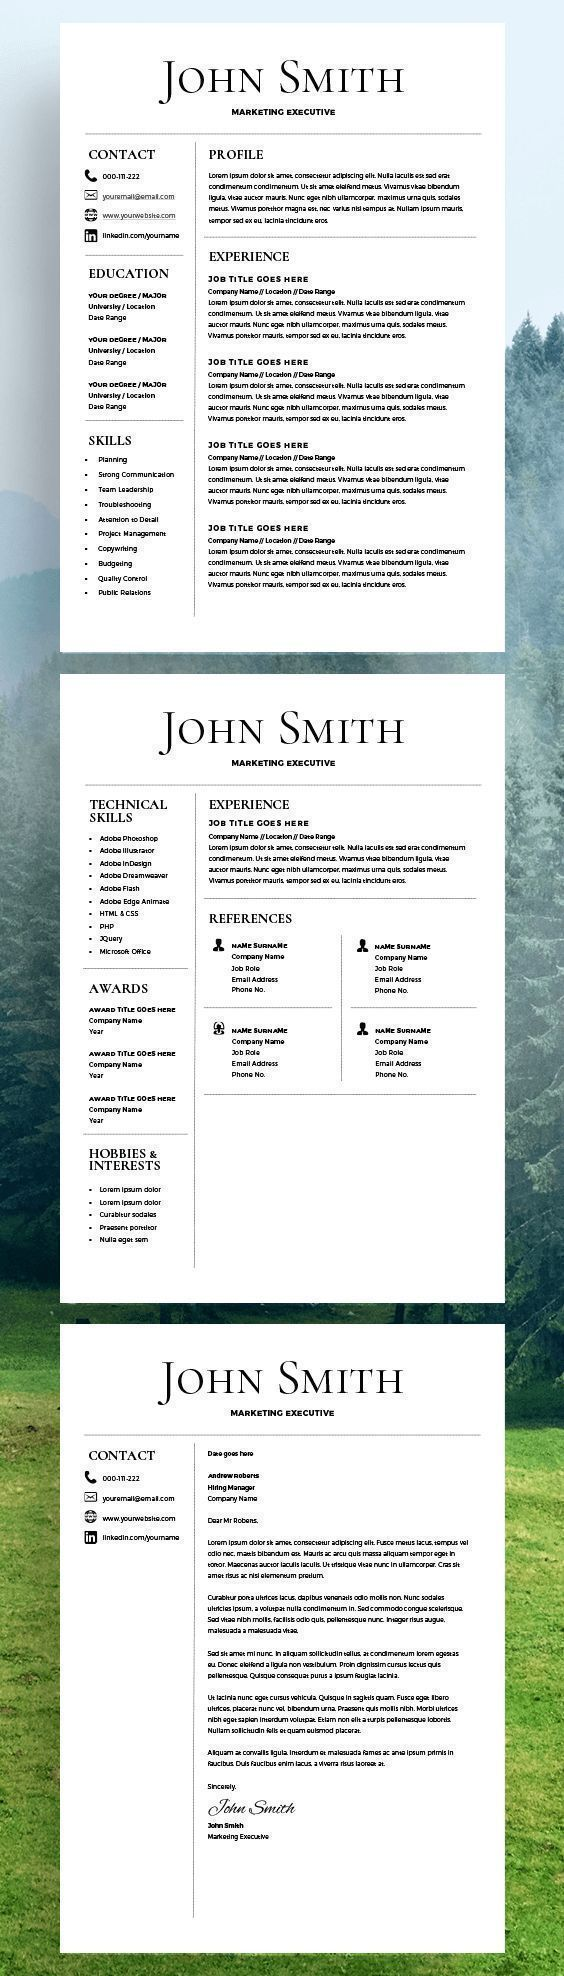 Resume Template - CV Template with Cover Letter - MS Word on Mac ...